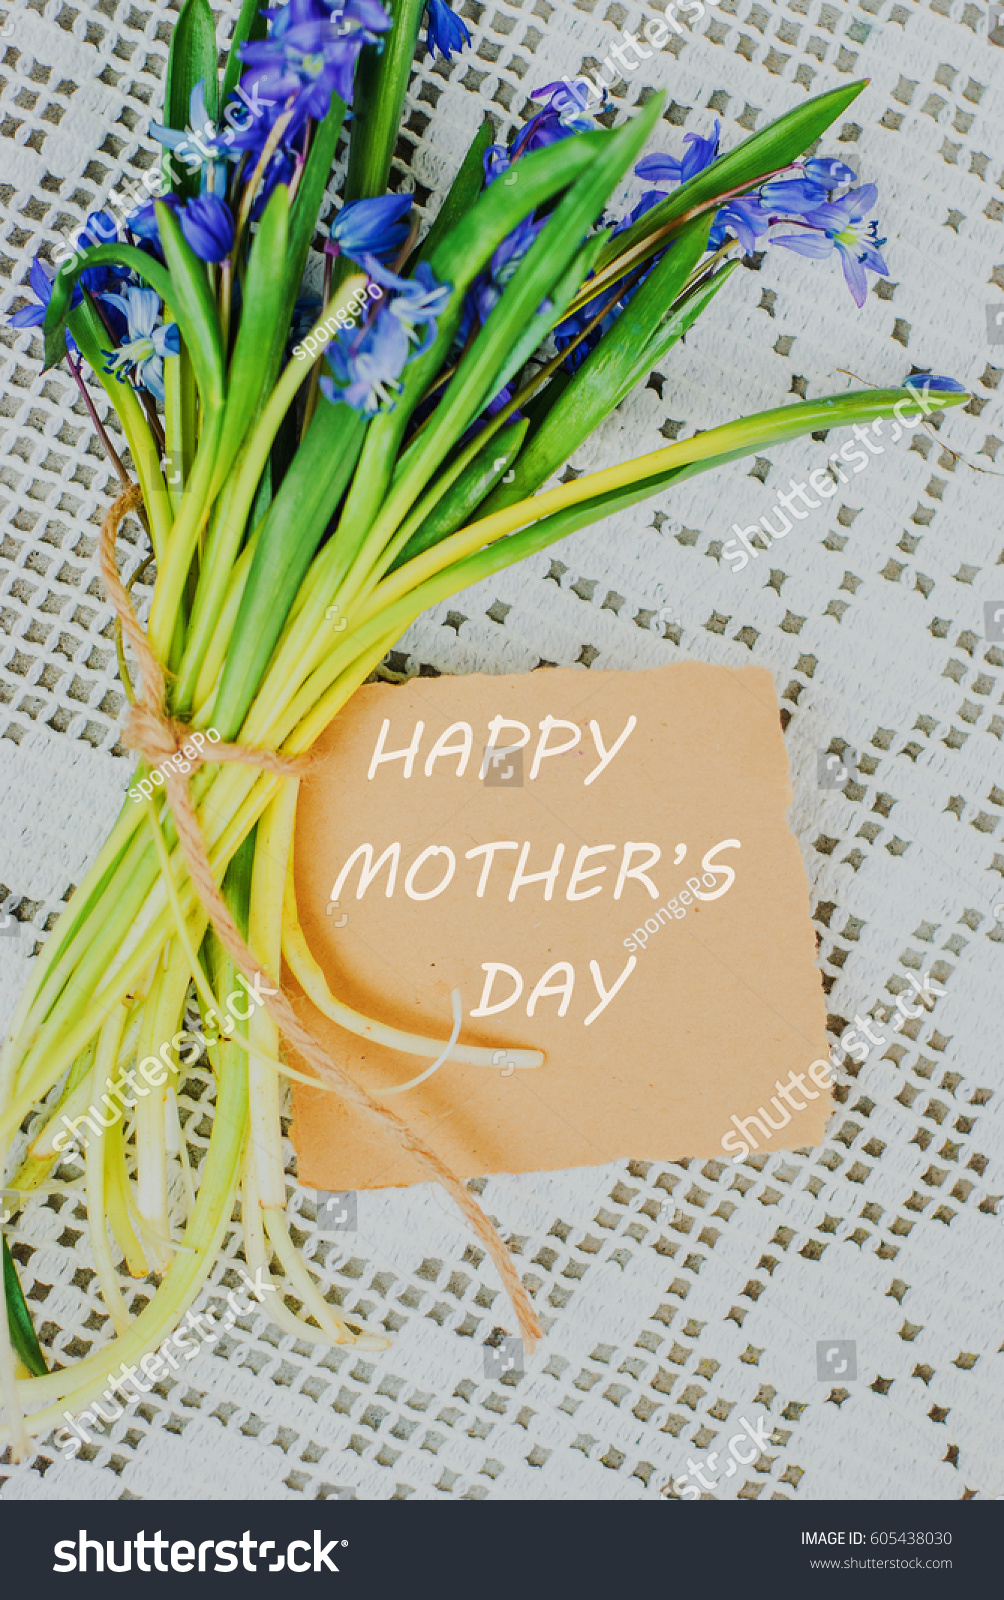 Happy mothers day text sign on stock photo 605438030 shutterstock happy mothers day text sign on stylish craft greeting card and scilla siberica on white rustic kristyandbryce Choice Image